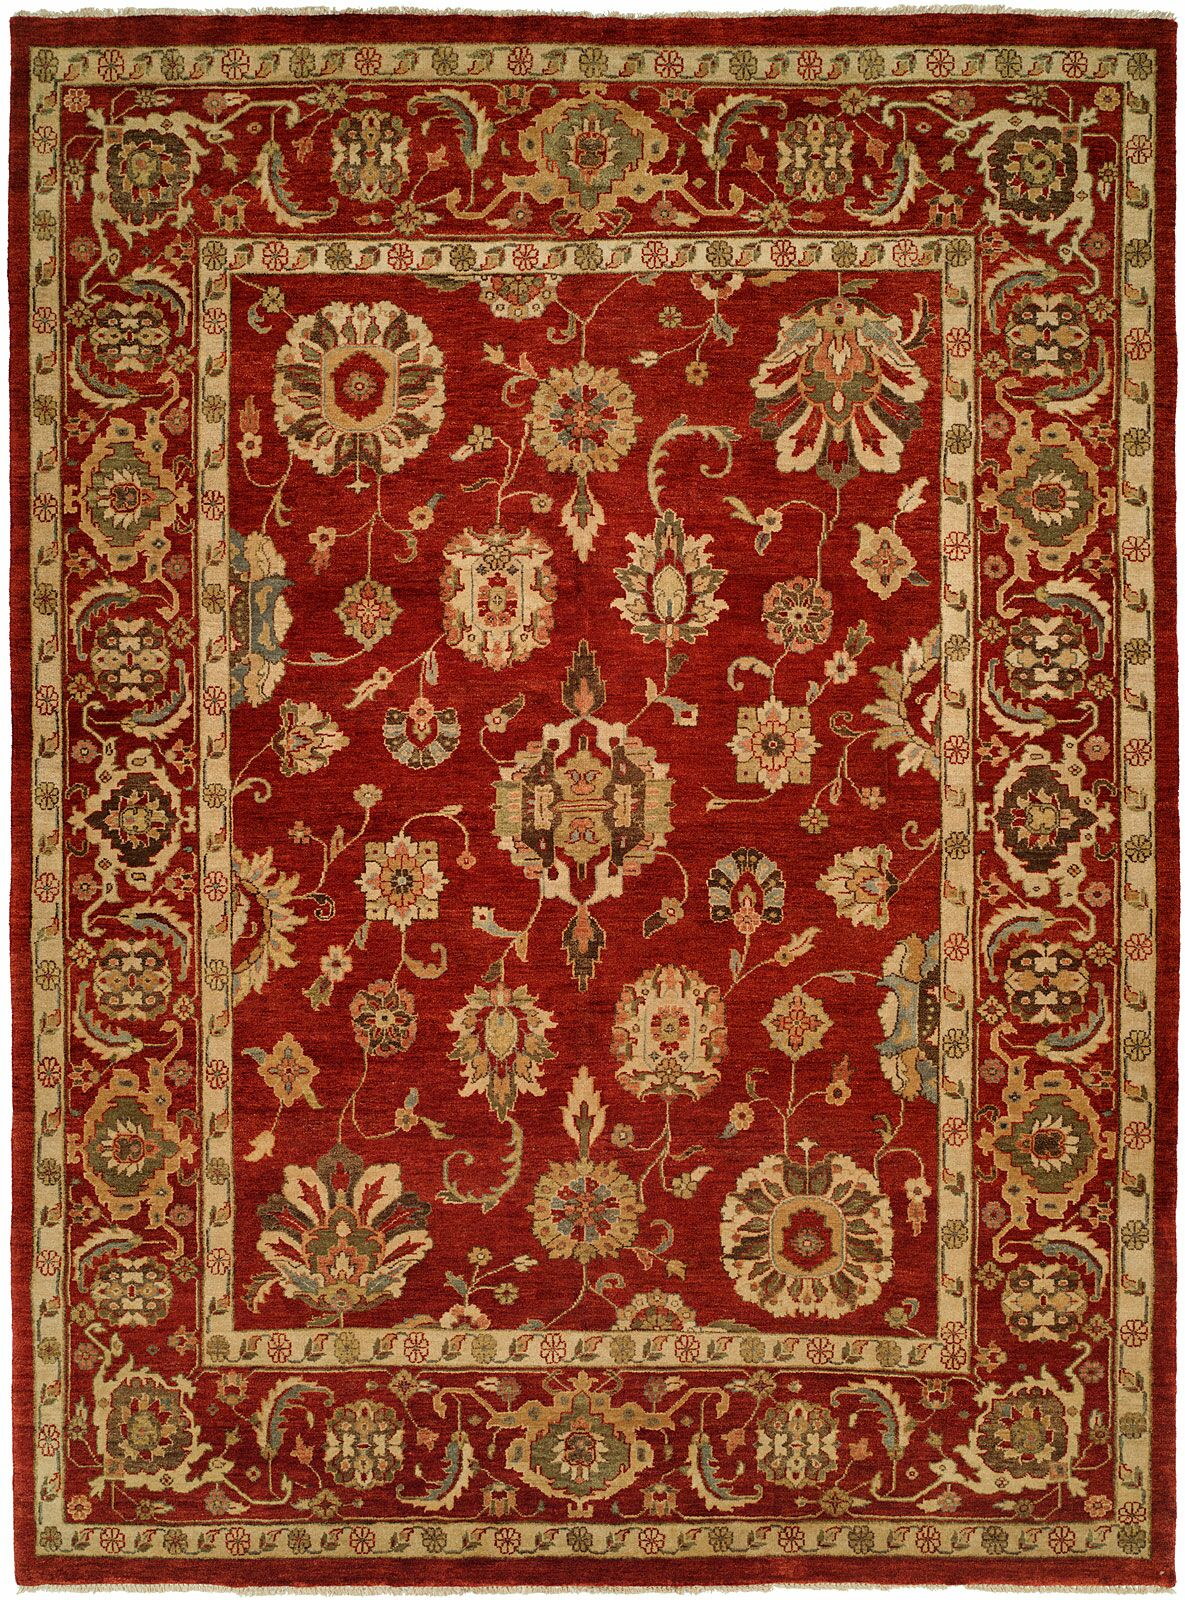 Ushuaia Hand-Knotted Red/Beige Area Rug Rug Size: Runner 2'6